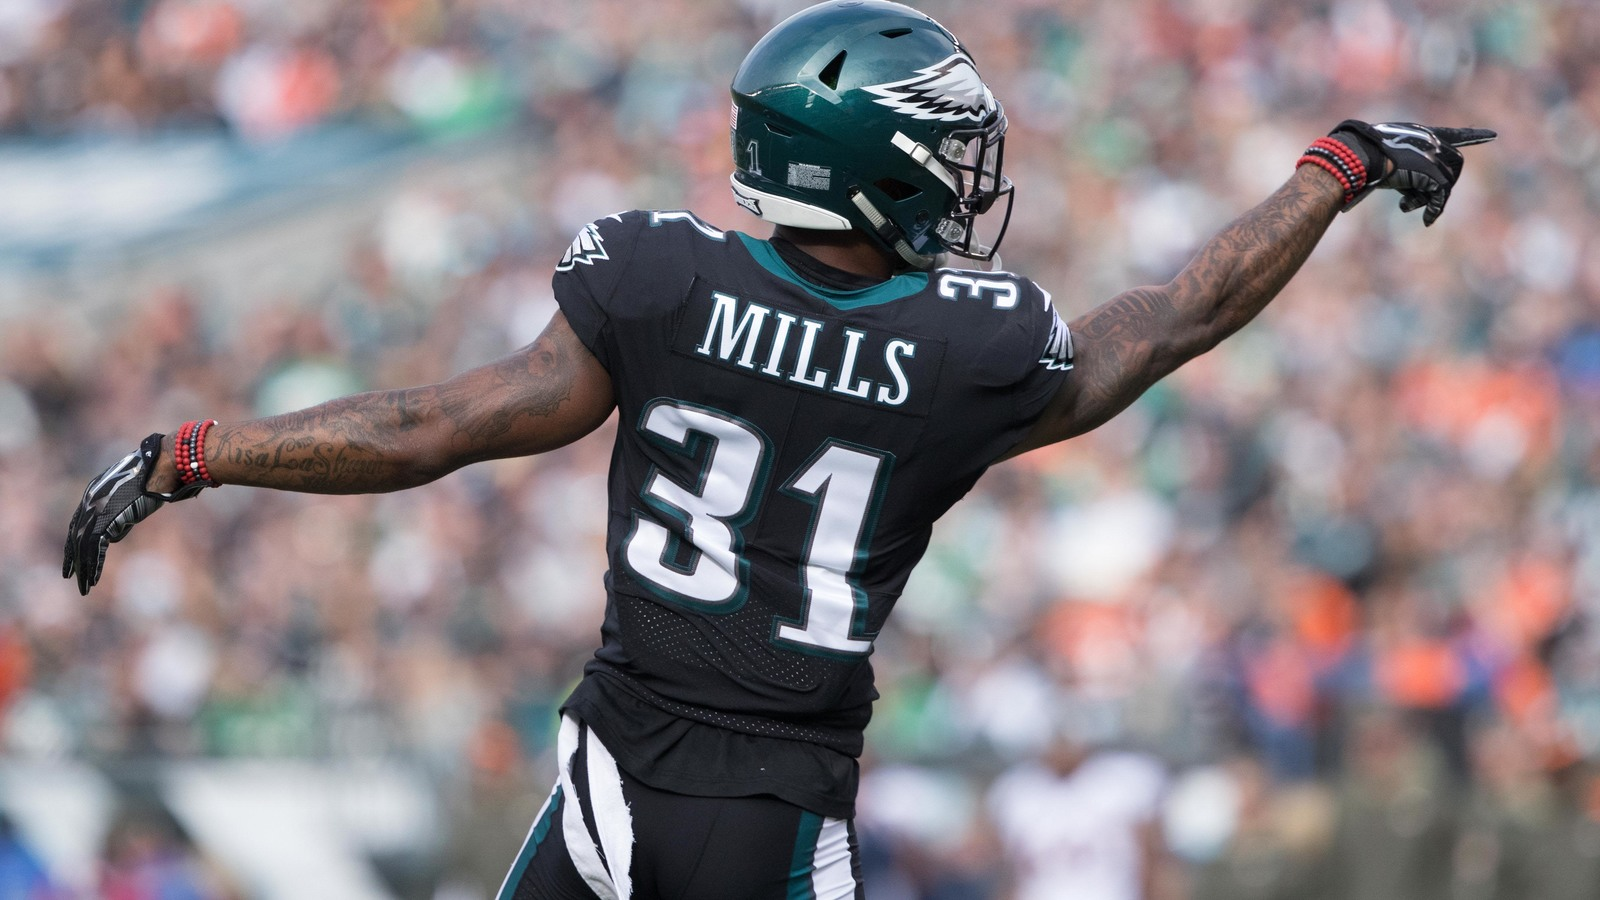 low priced 73c58 82d7d WATCH: Jalen Mills makes young fan's day, brings him to ...